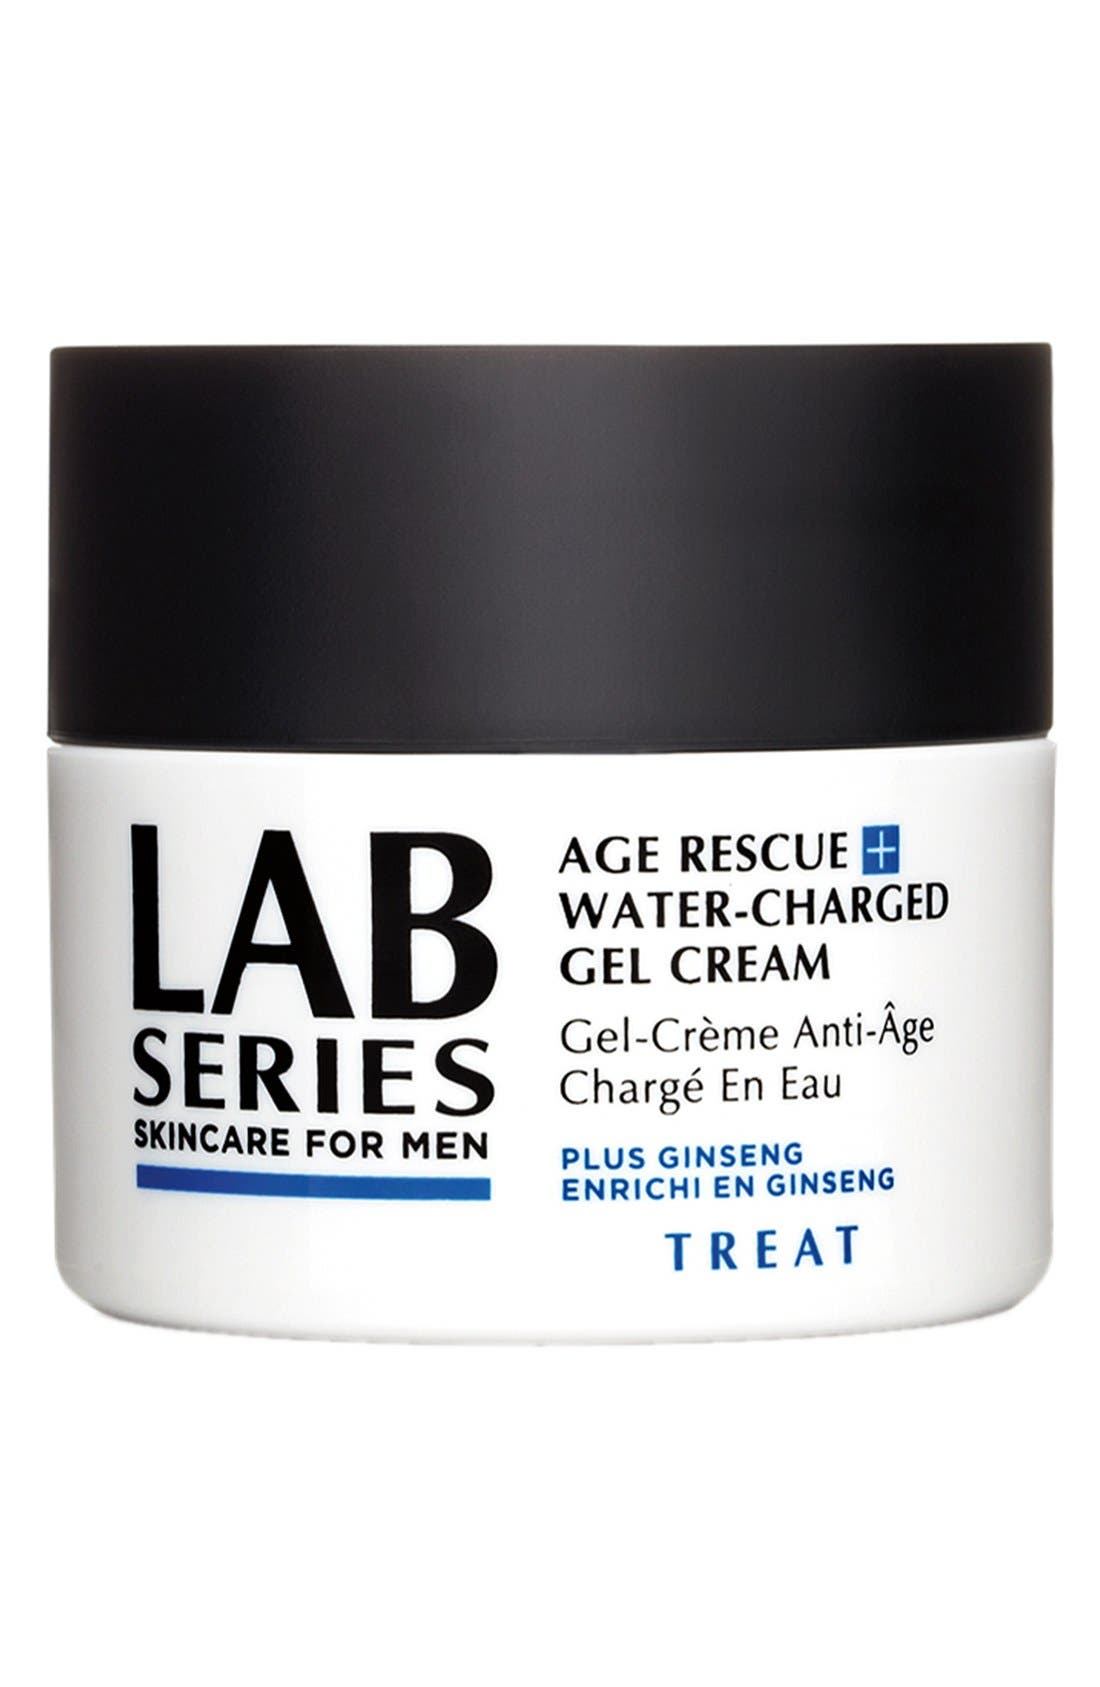 Age Rescue + Water-Charged Gel Cream,                             Main thumbnail 1, color,                             000